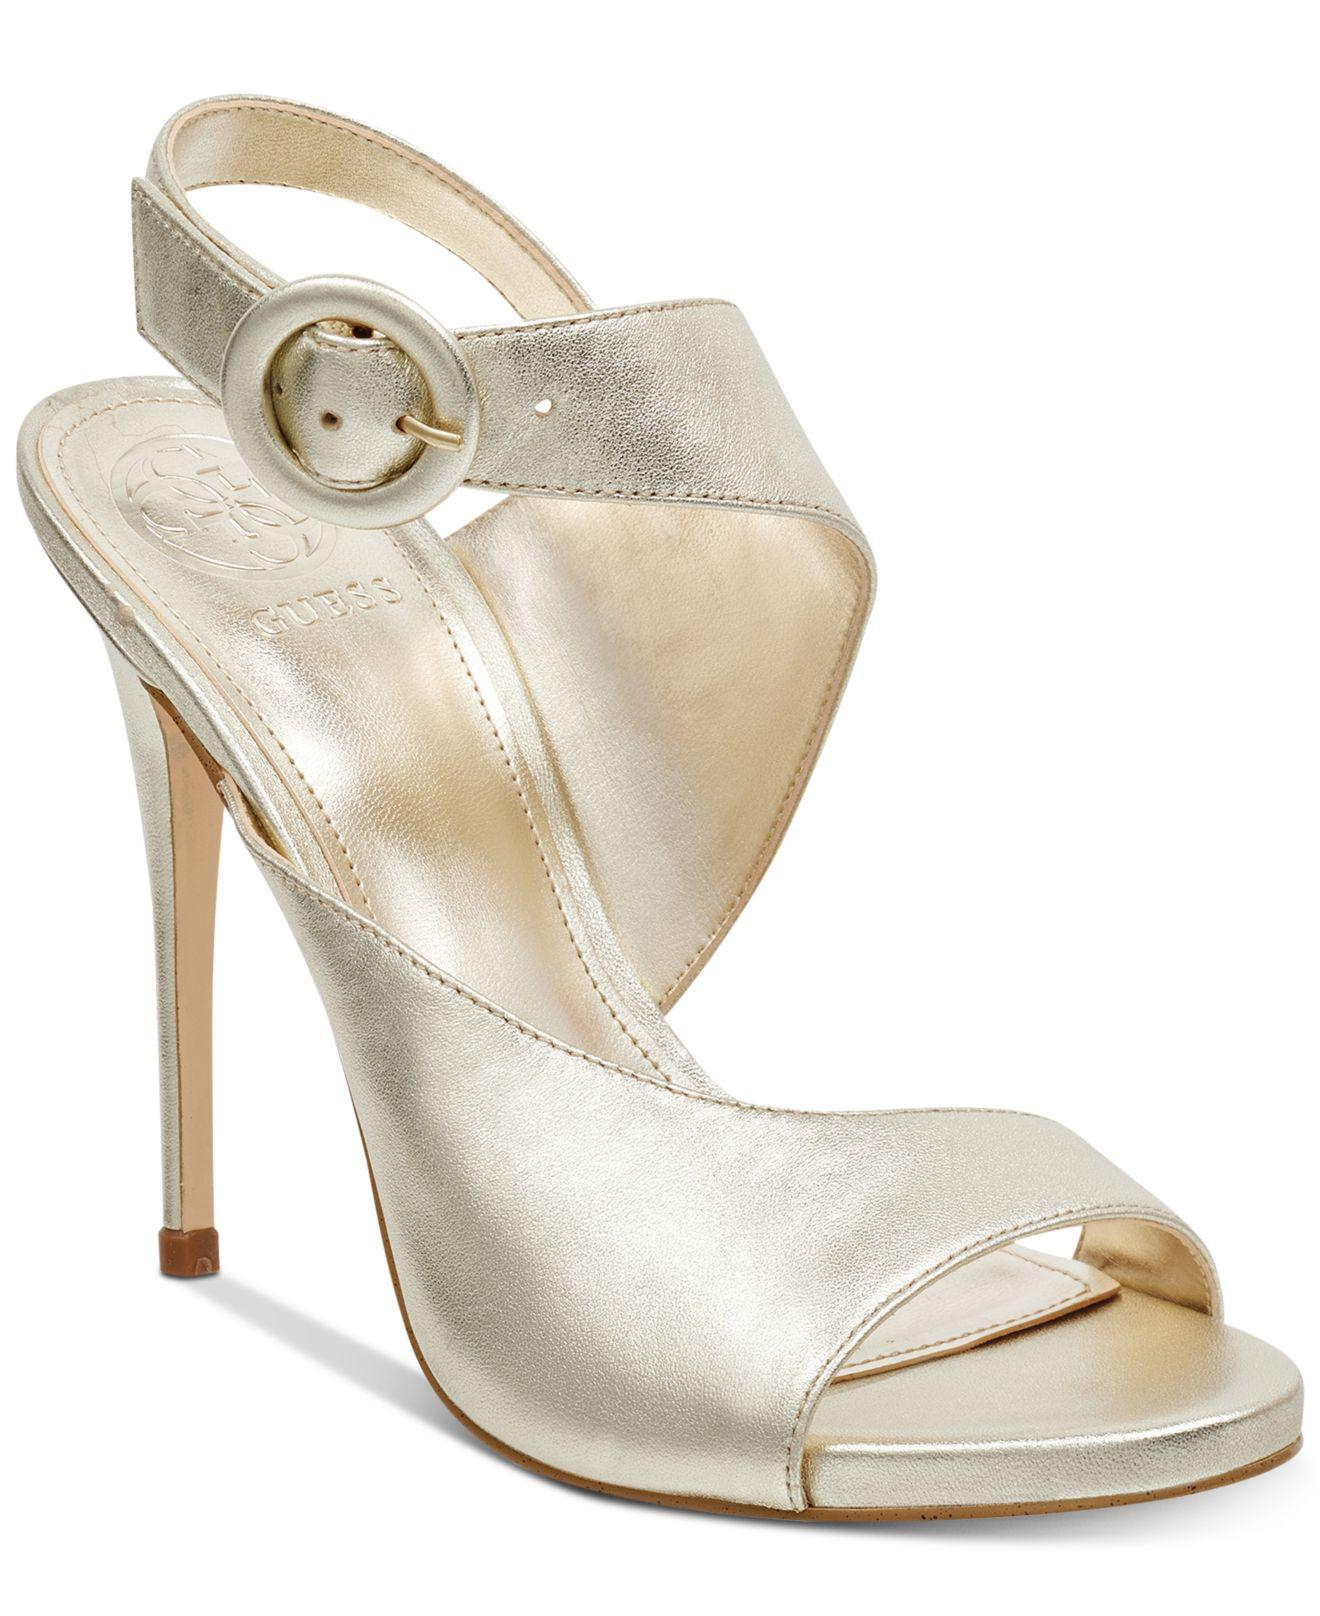 64abe8a3ed Guess Tyson Asymmetrical Sandals in Metallic - Lyst